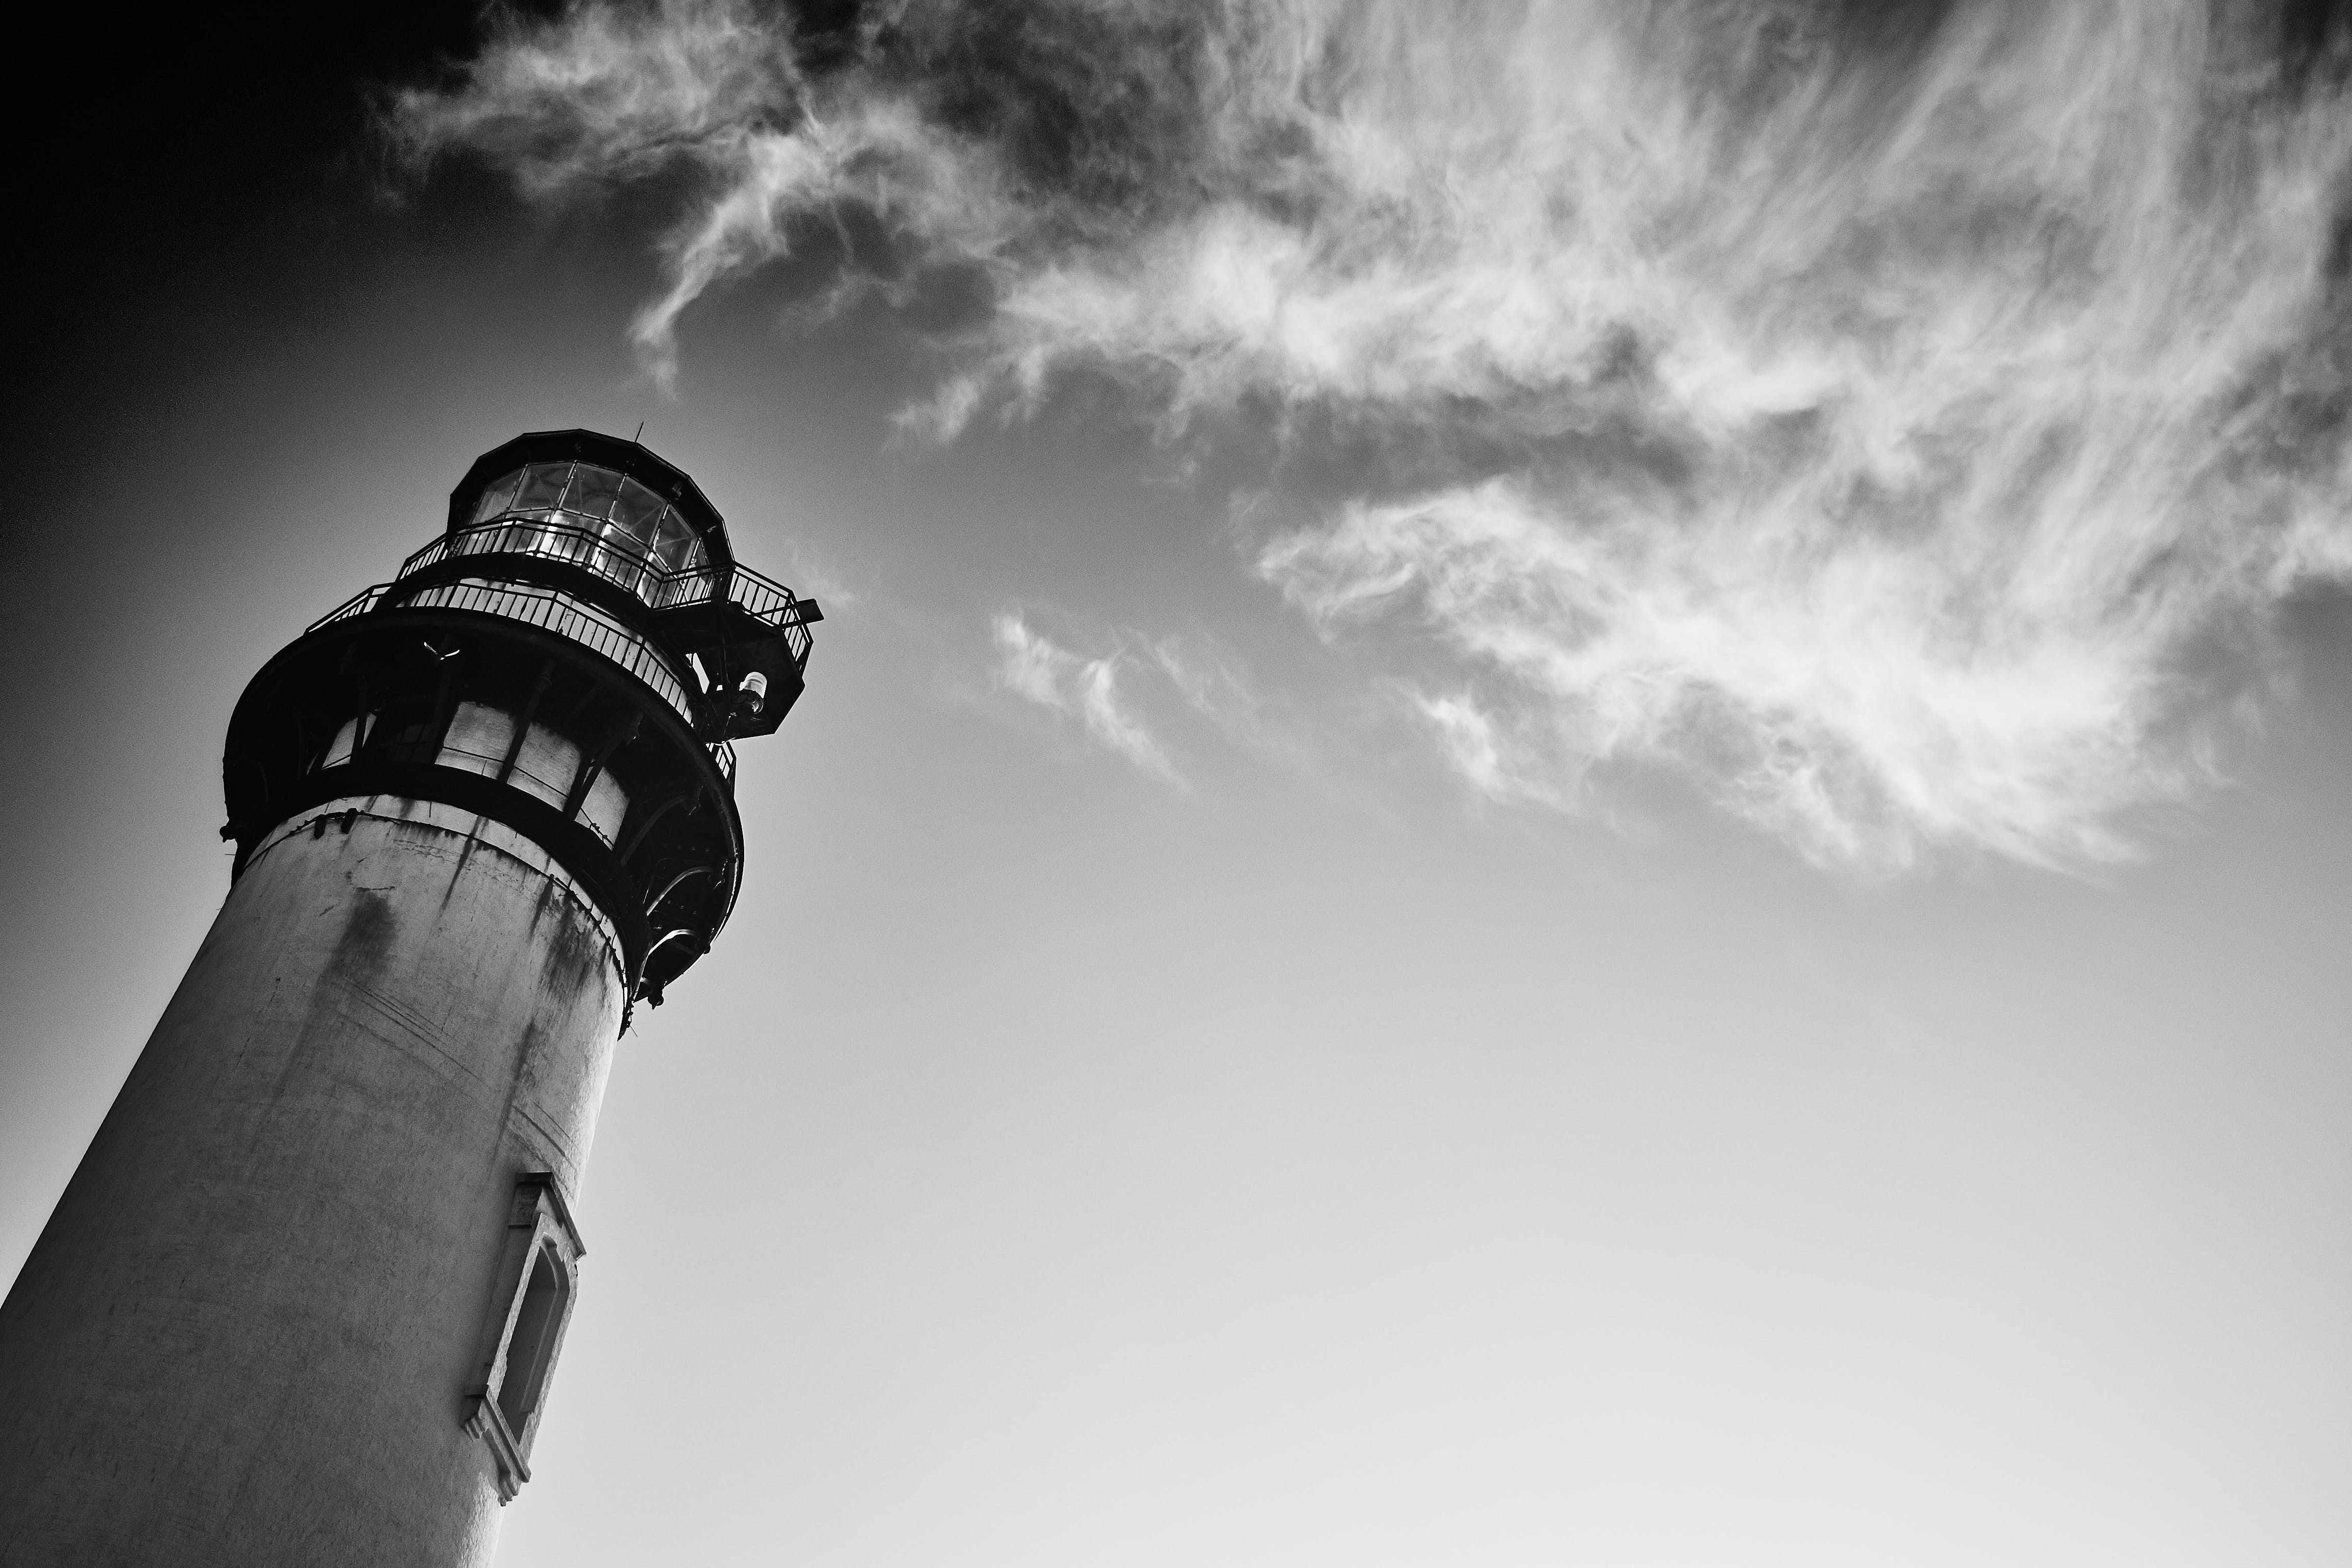 Gray Scale Low-angle Photography of Lighthouse